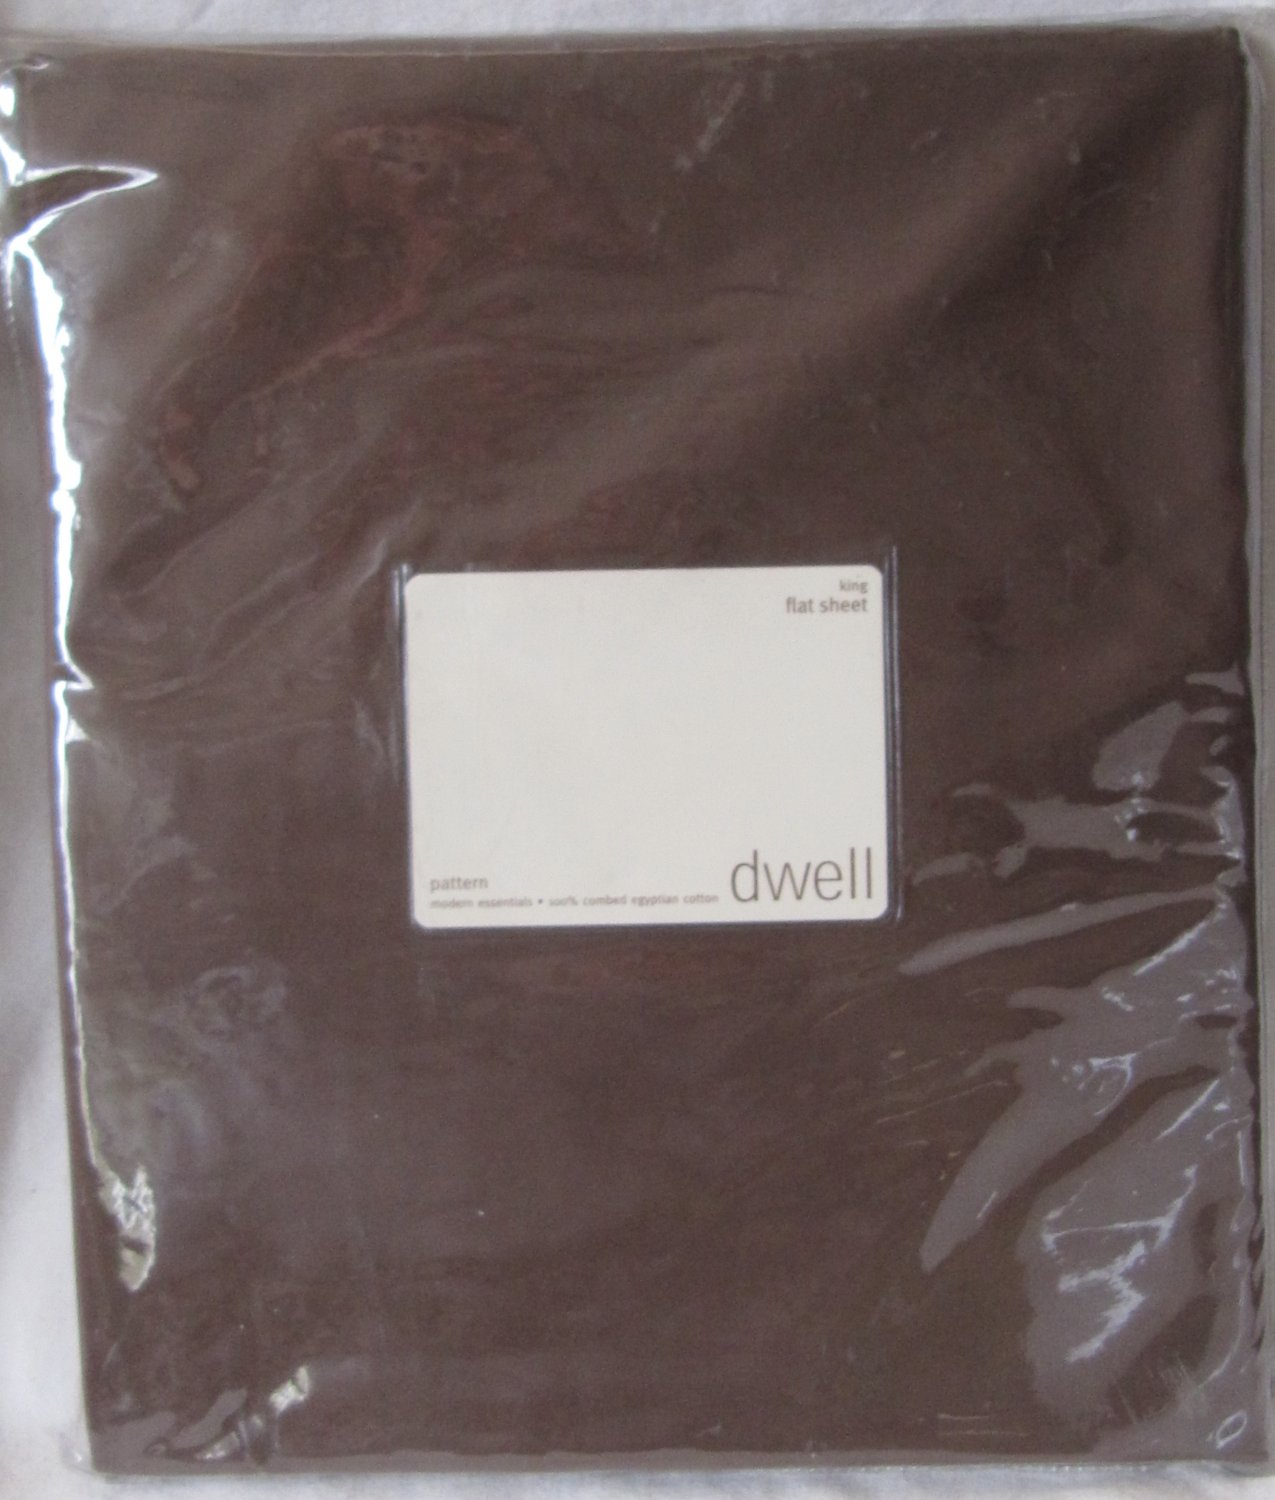 DWELL King Flat Sheet Chocolate Brown Combed Egyptian Cotton 210 Thread Count Percale New